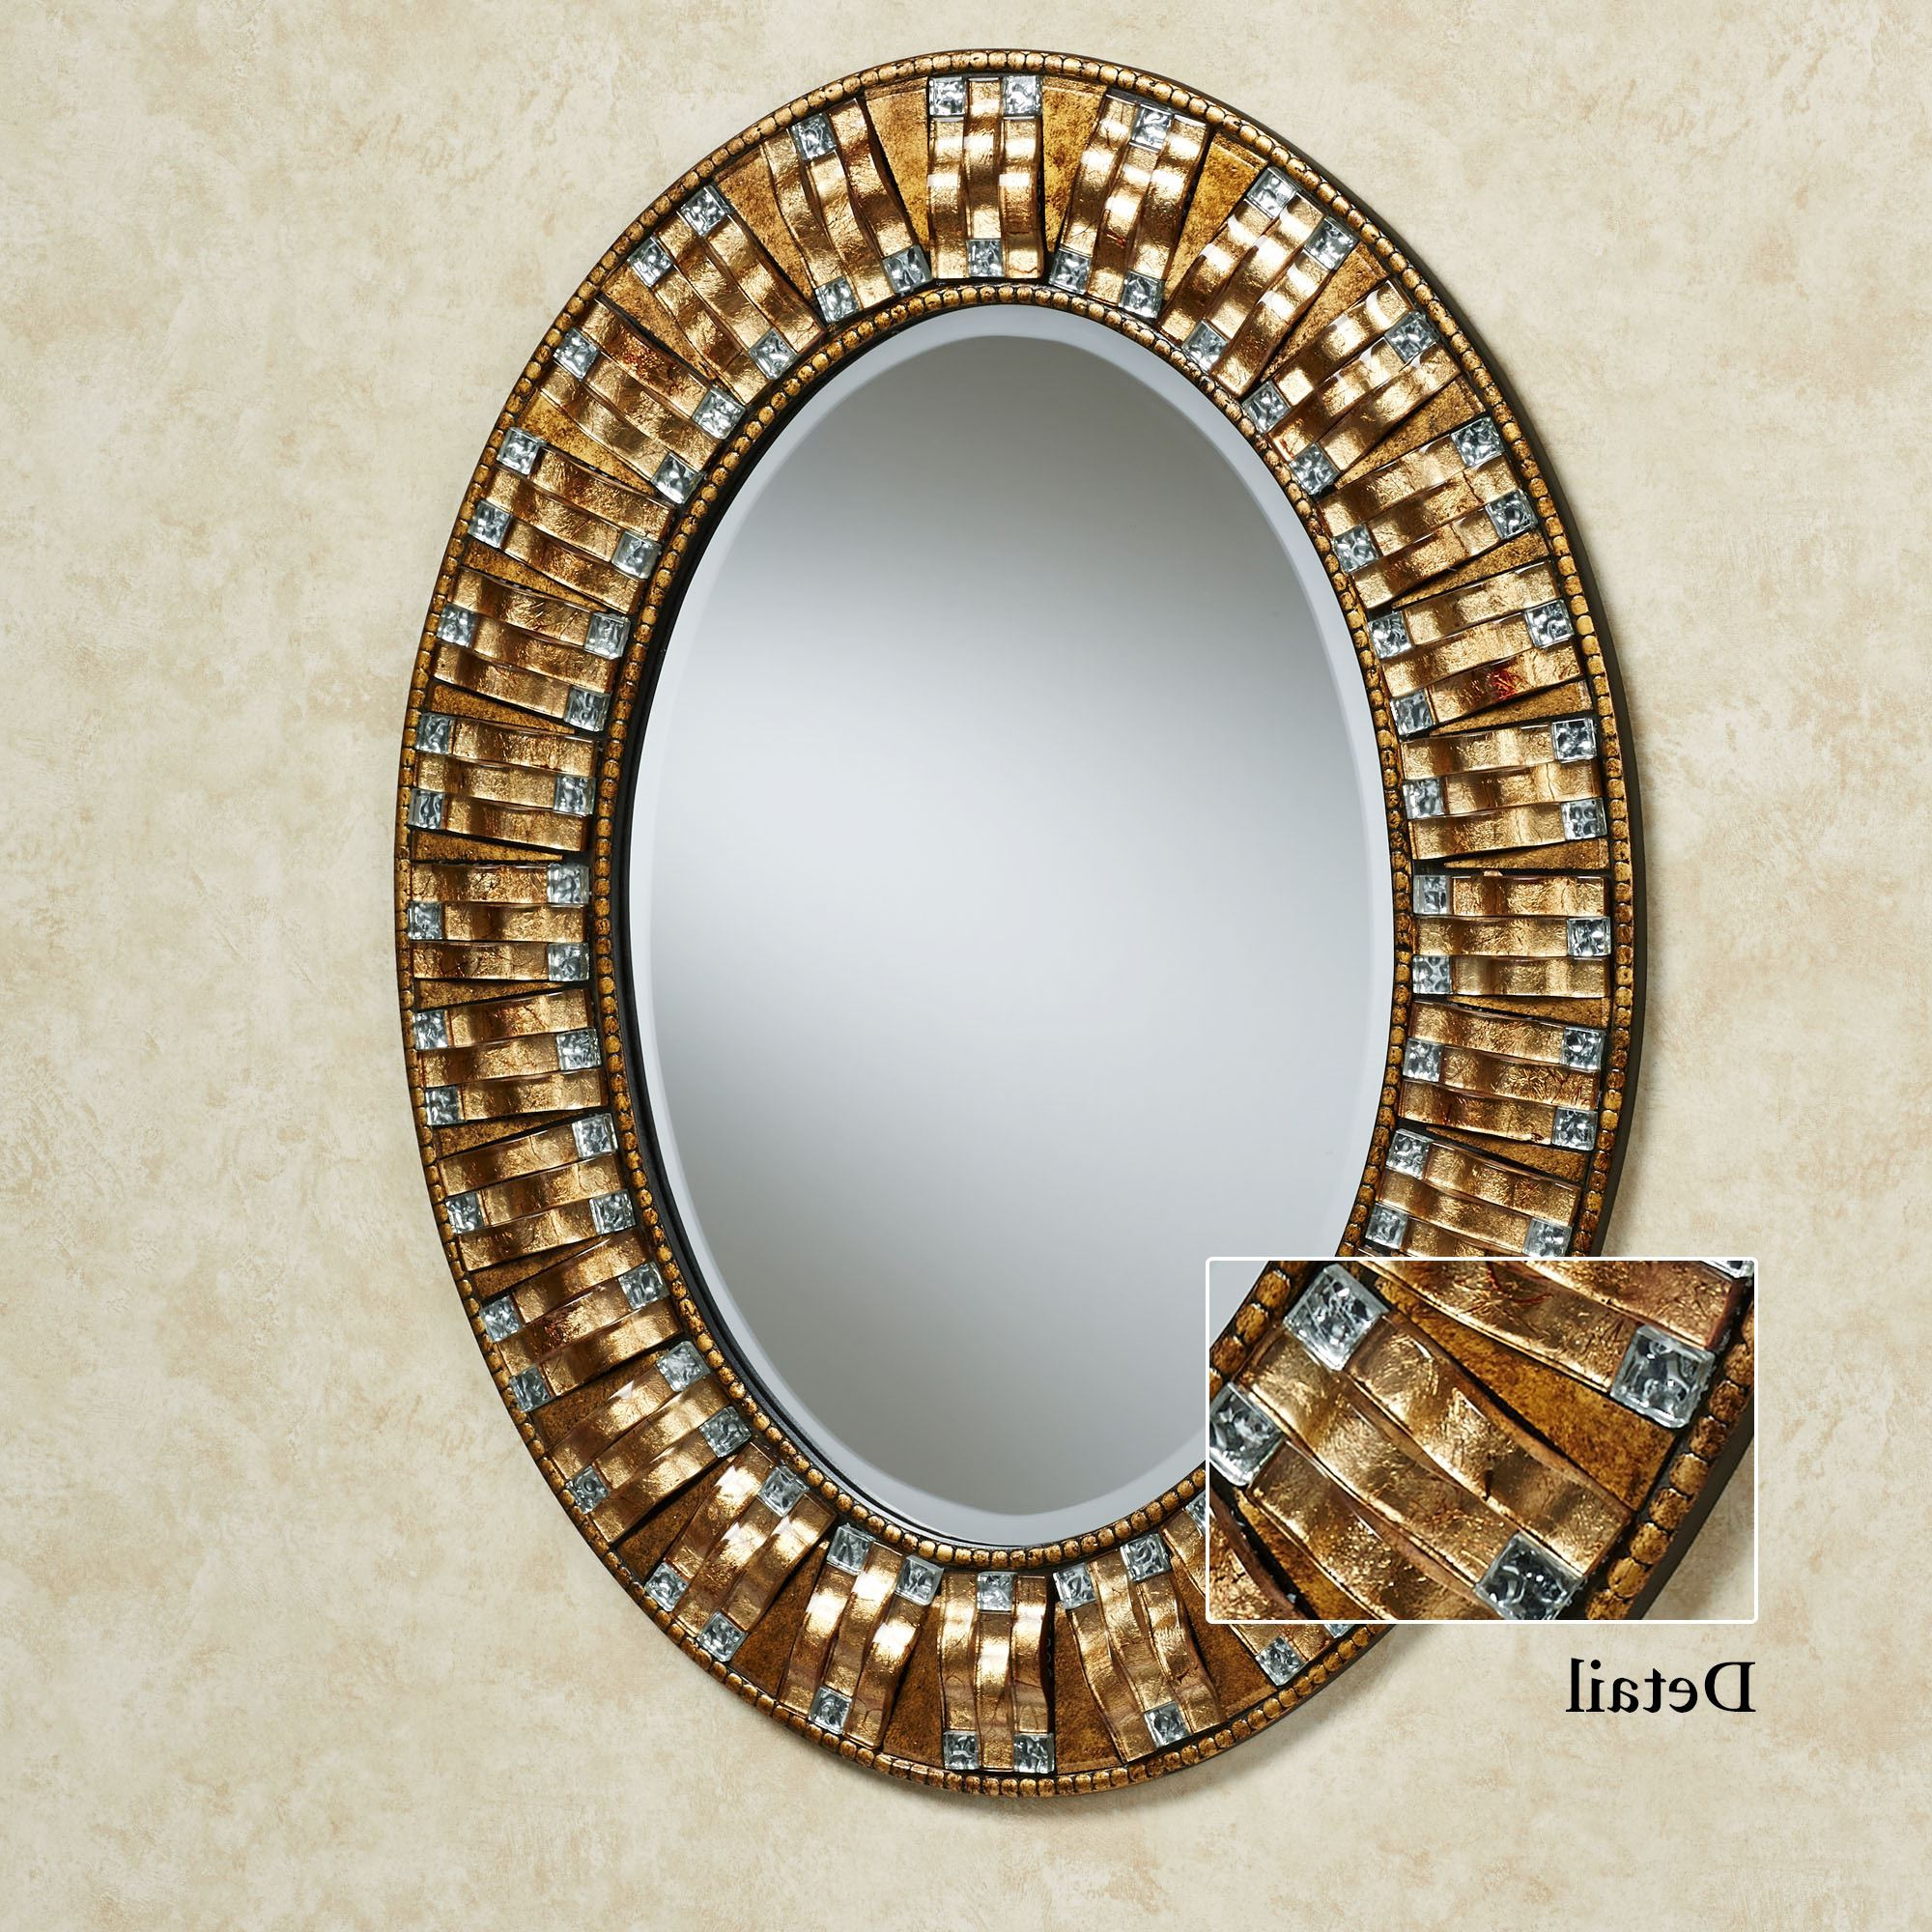 Mosaic Wall Mirrors Regarding Most Up To Date Maybelle Mosaic Oval Wall Mirror (View 8 of 20)